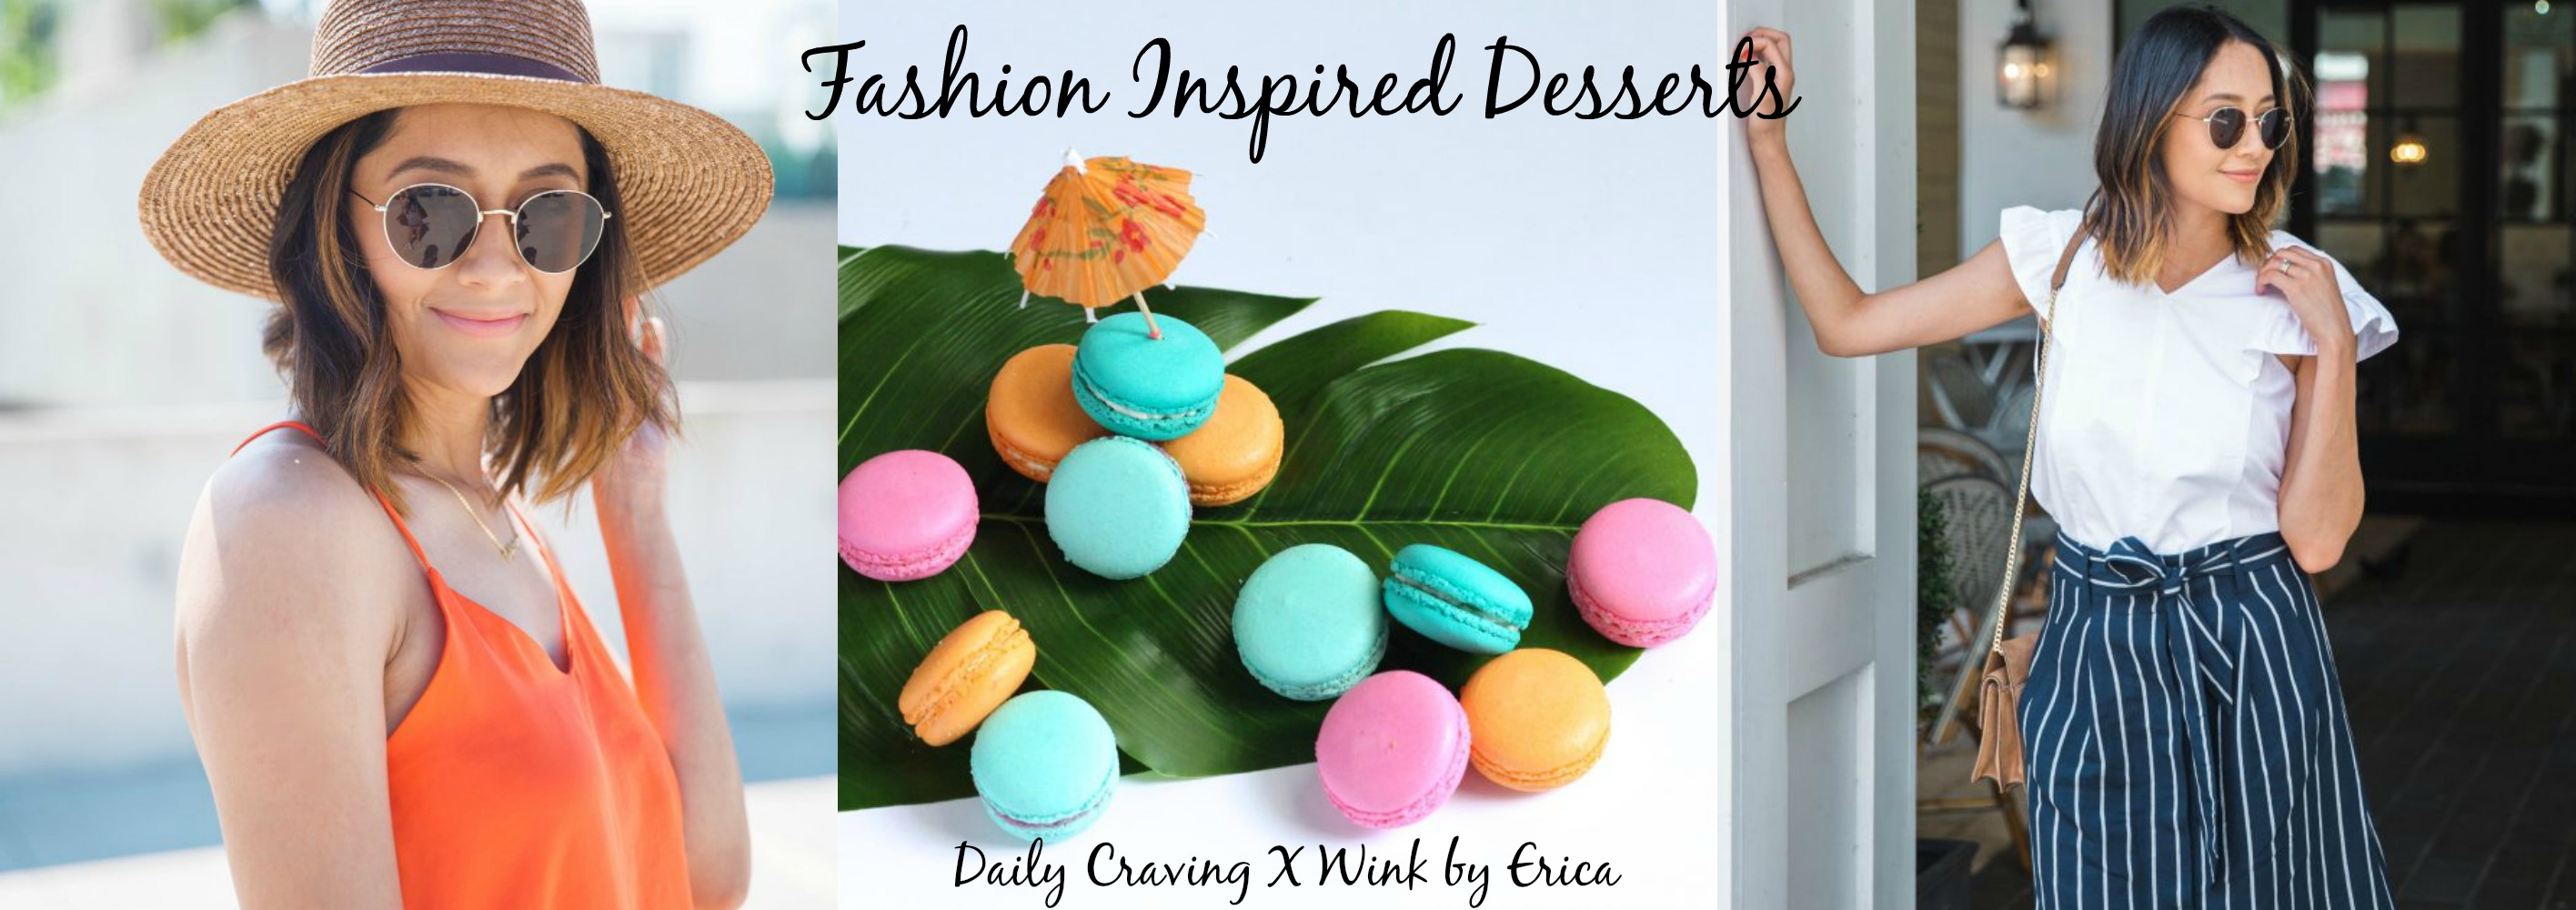 Fashion Inspired Desserts for Your Next Party